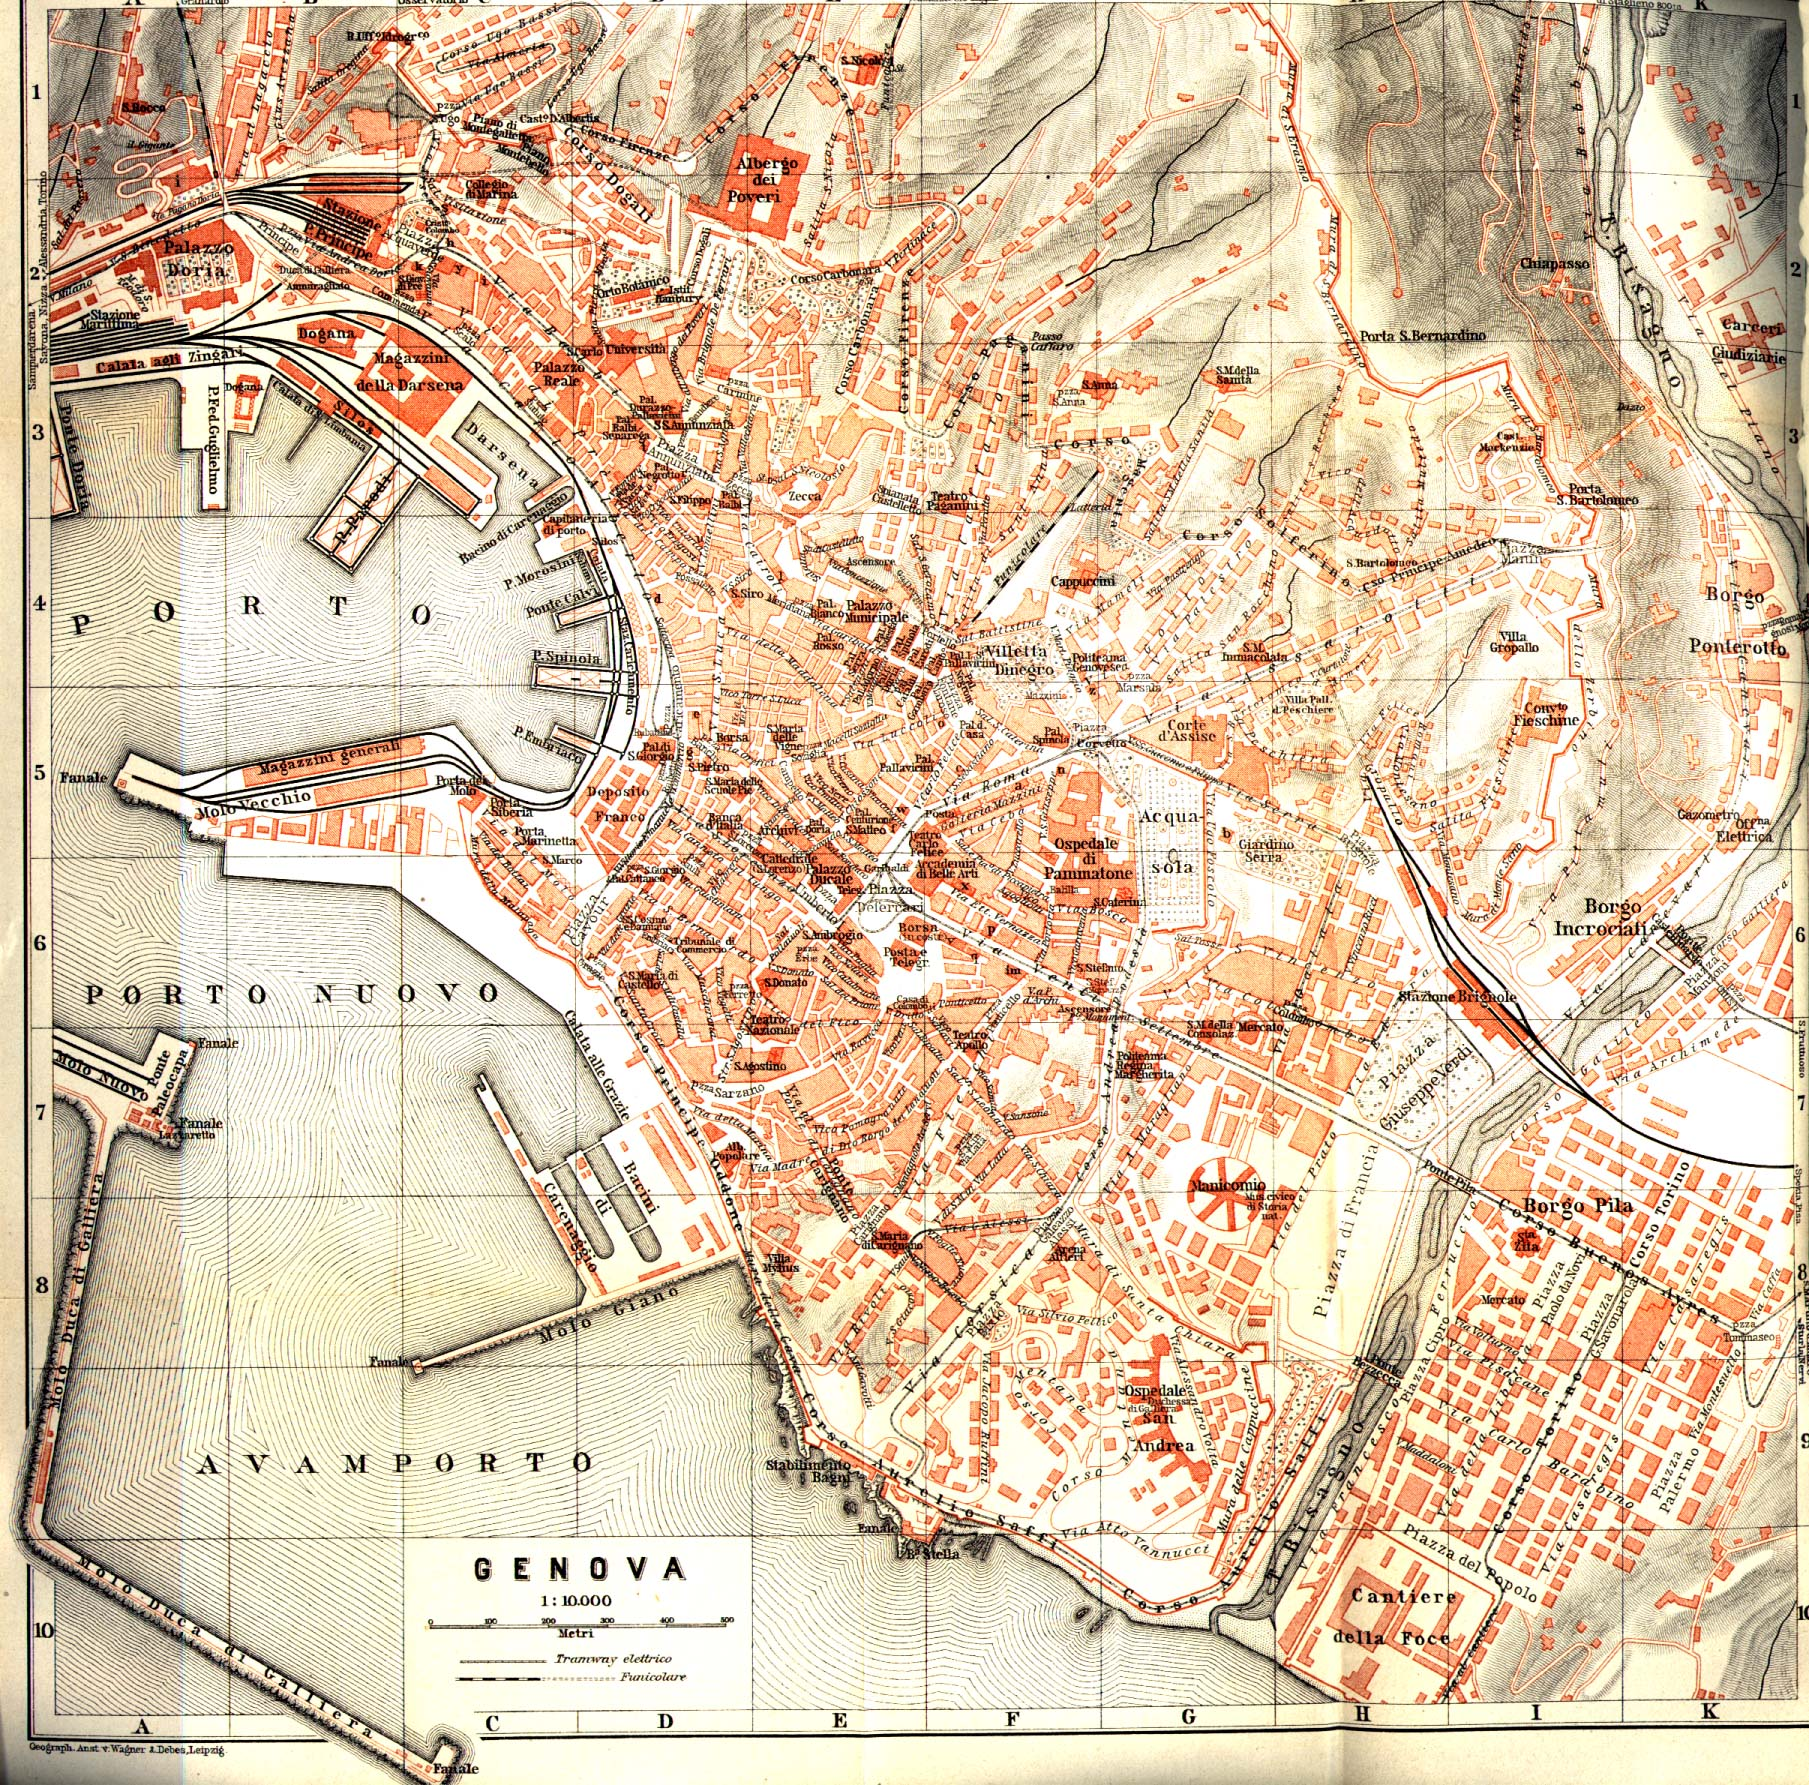 Genova (Genoa) City Map, Italy 1913